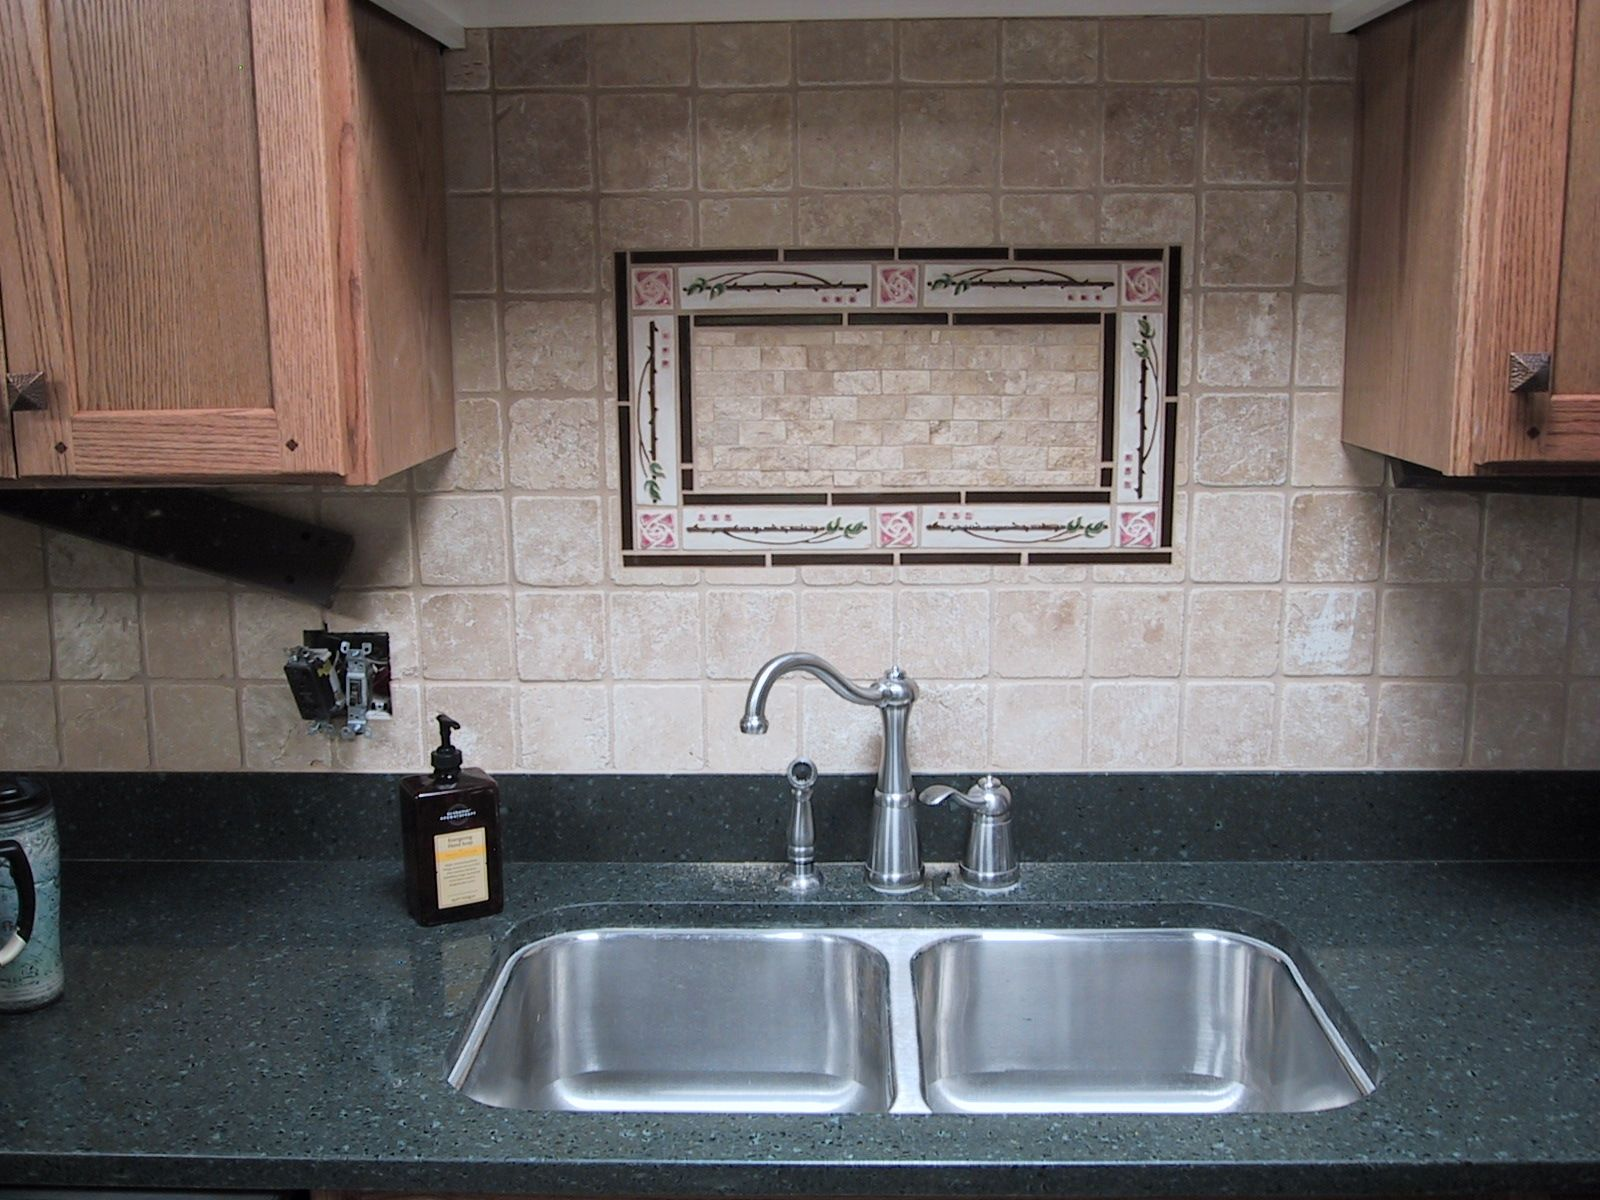 backsplash ideas kitchen sink backsplash ideas ehow com diy